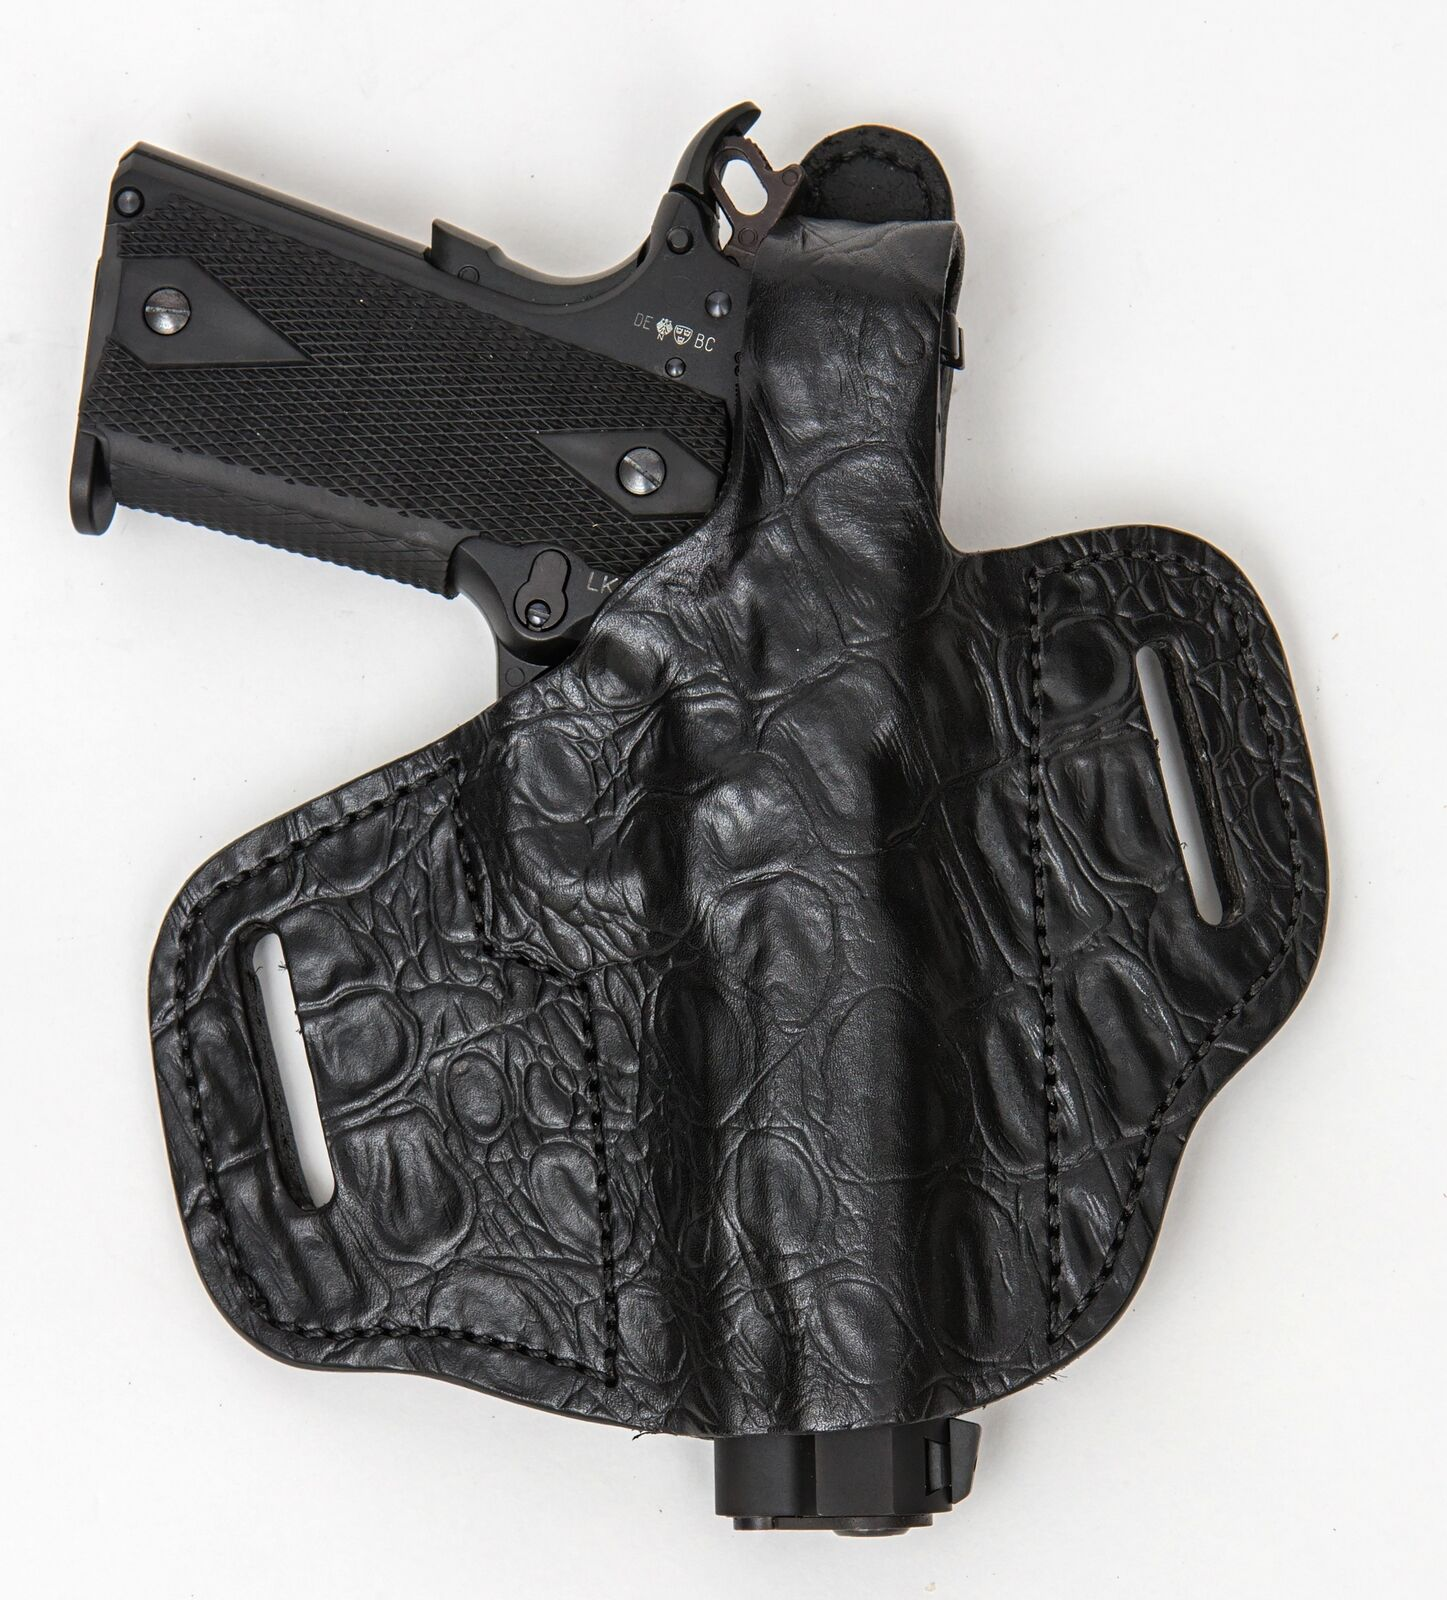 On Duty OWB Conceal RH LH OWB Duty Leder Gun Holster For Remington R51 w/ CT Laserguard f24155